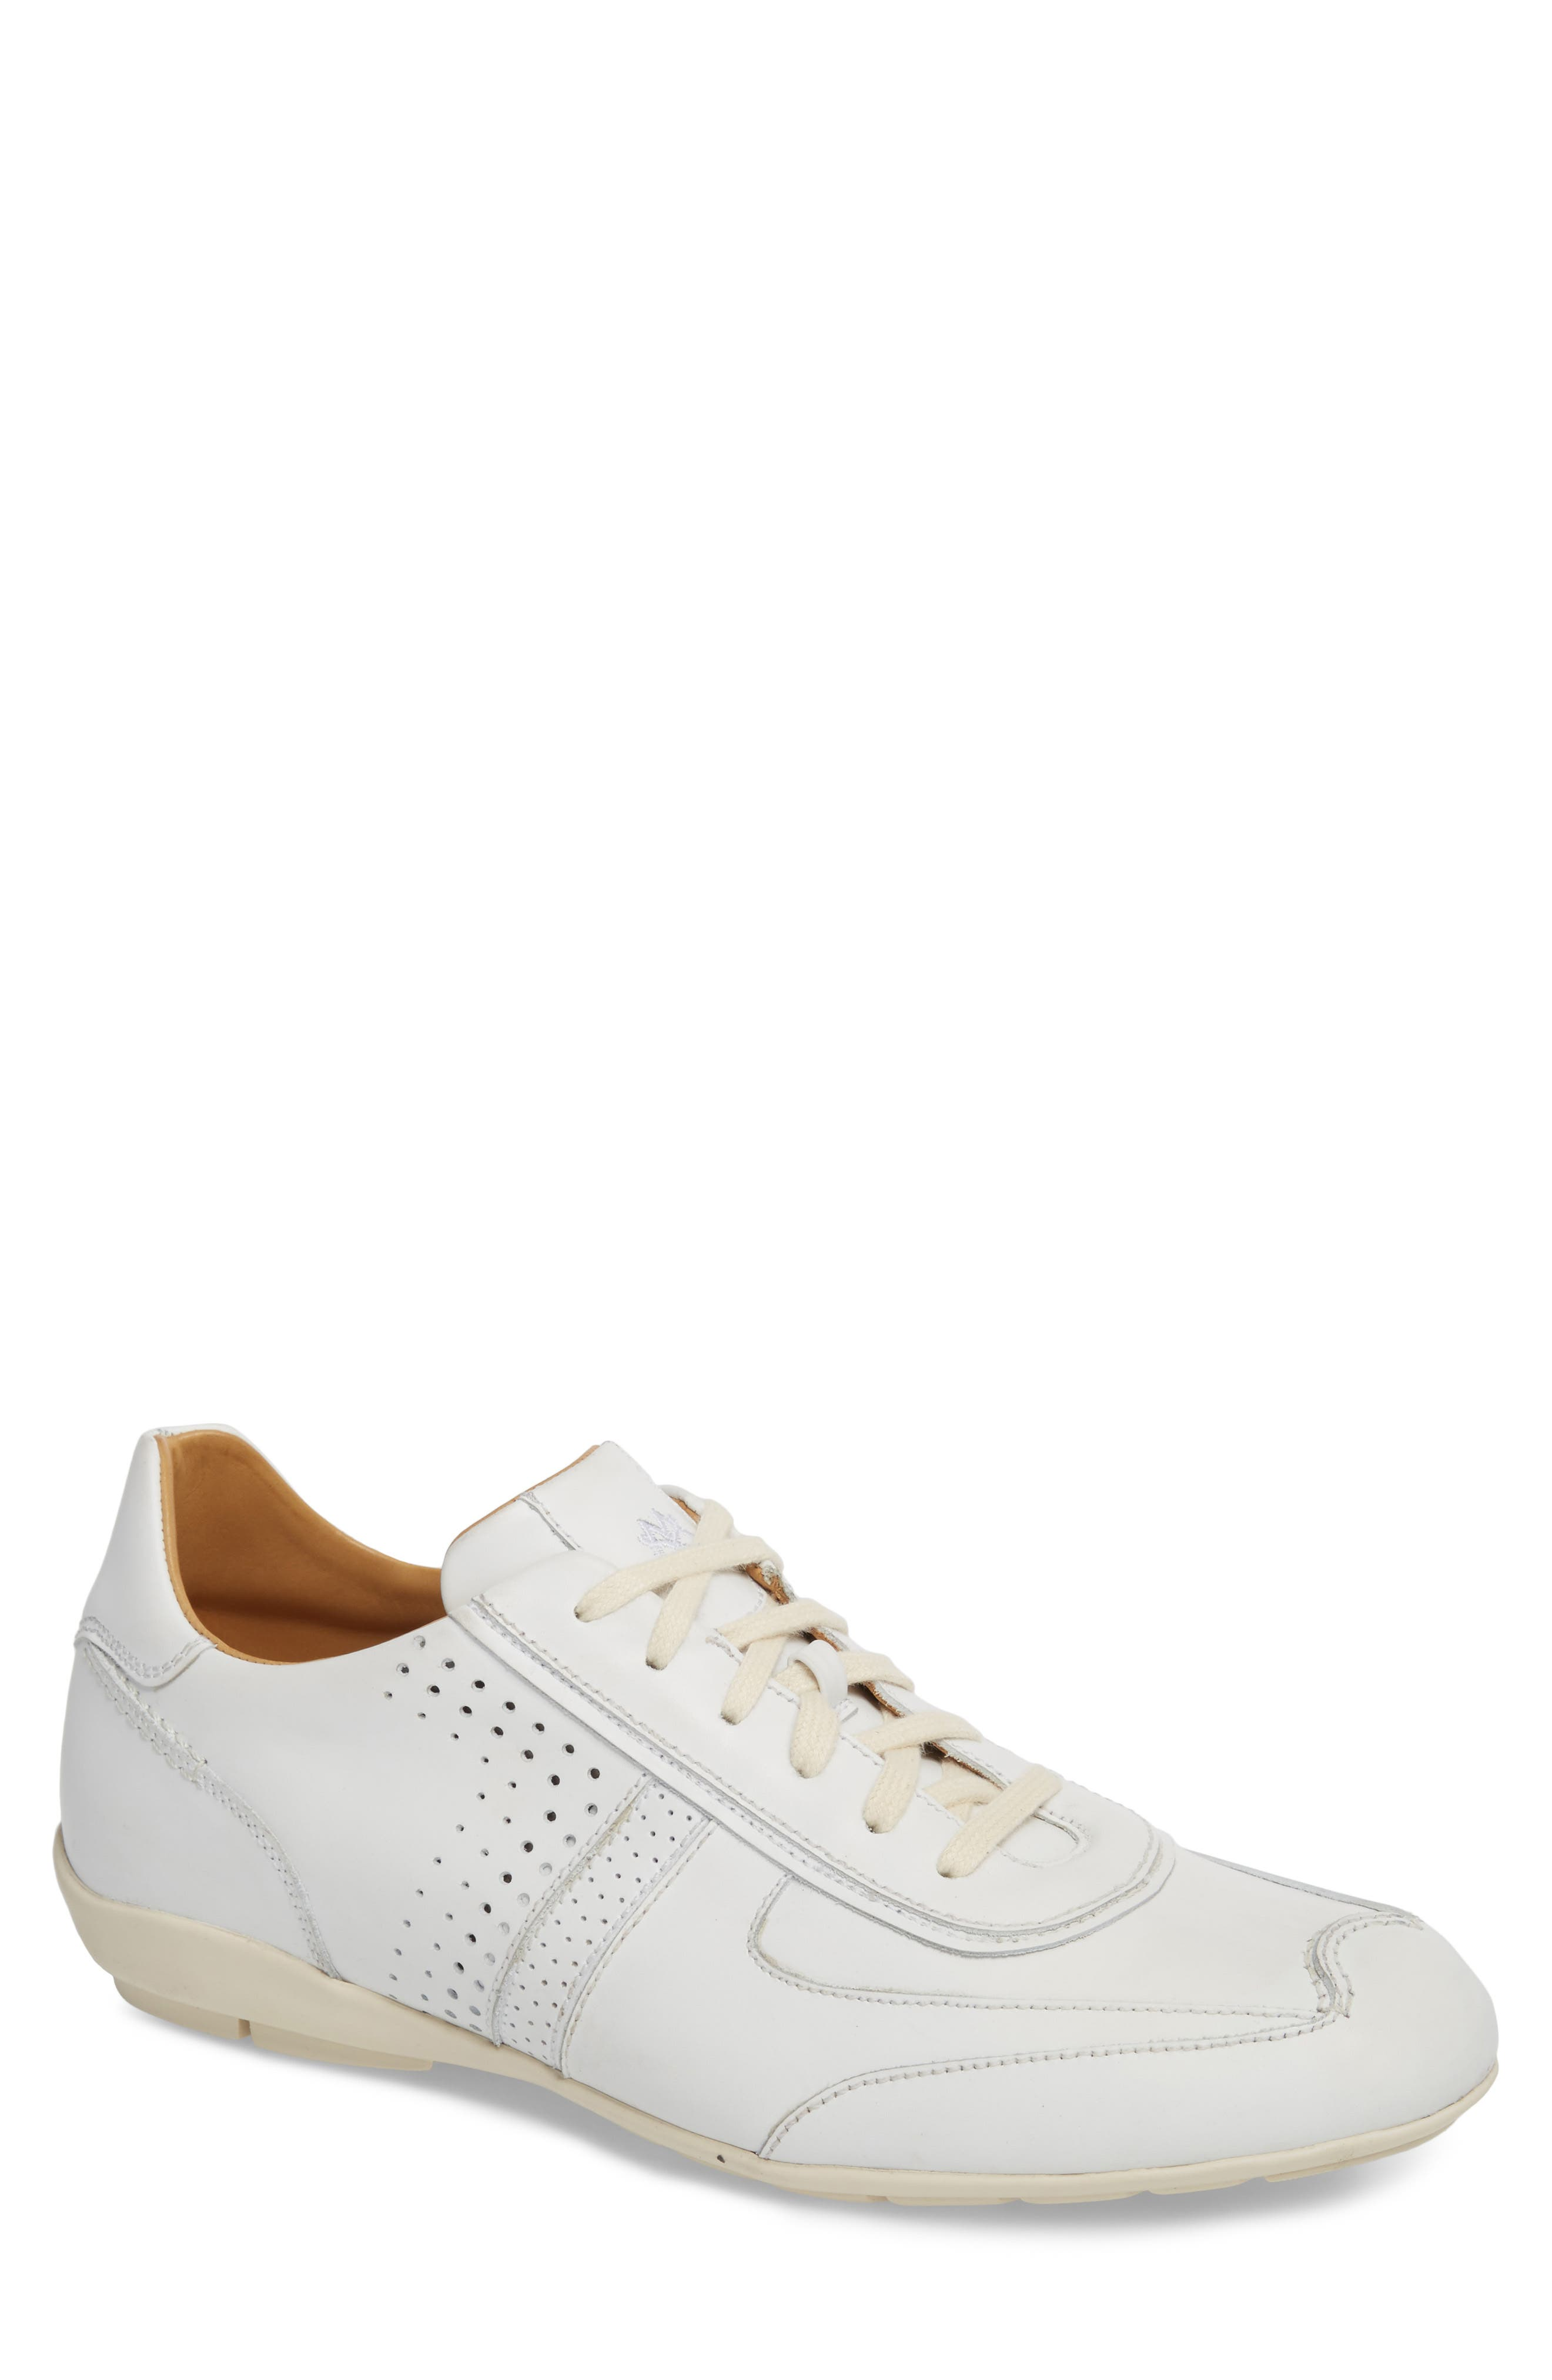 Lozano Ii Low Top Sneaker in White Leather